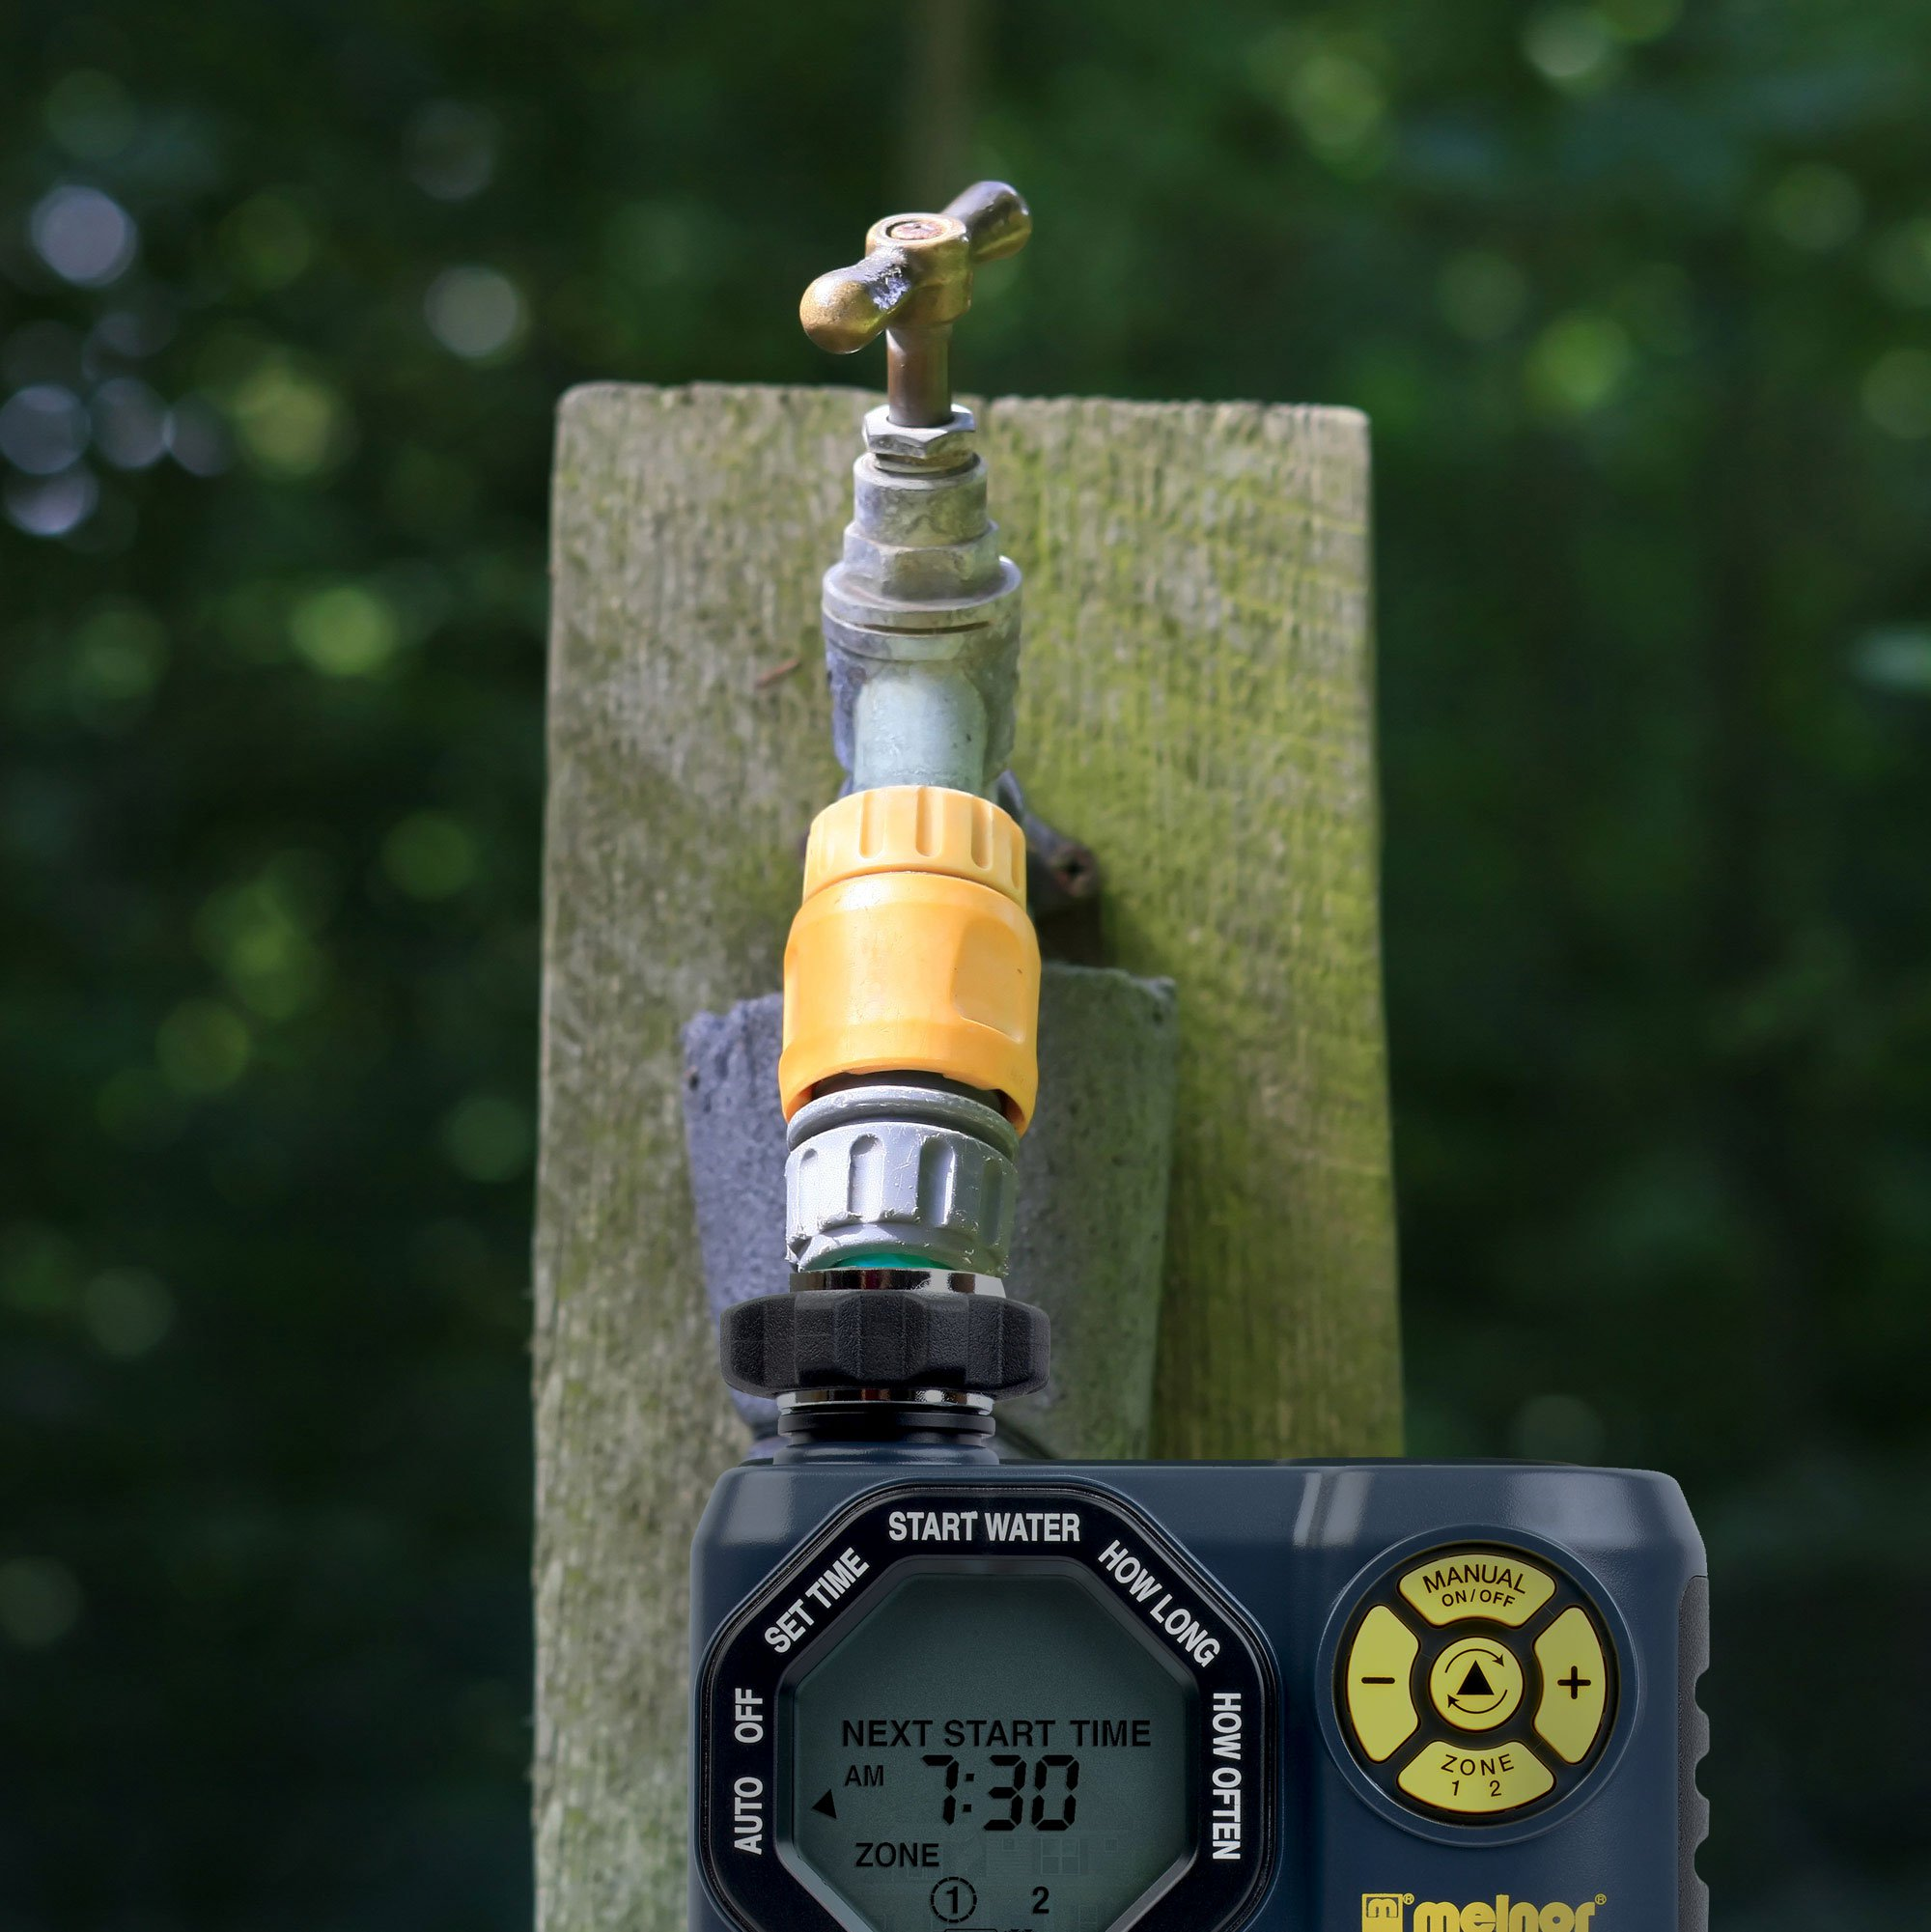 Dkb Household Usa-Zyliss 200140 2 Zone Water Timer - image 1 of 5